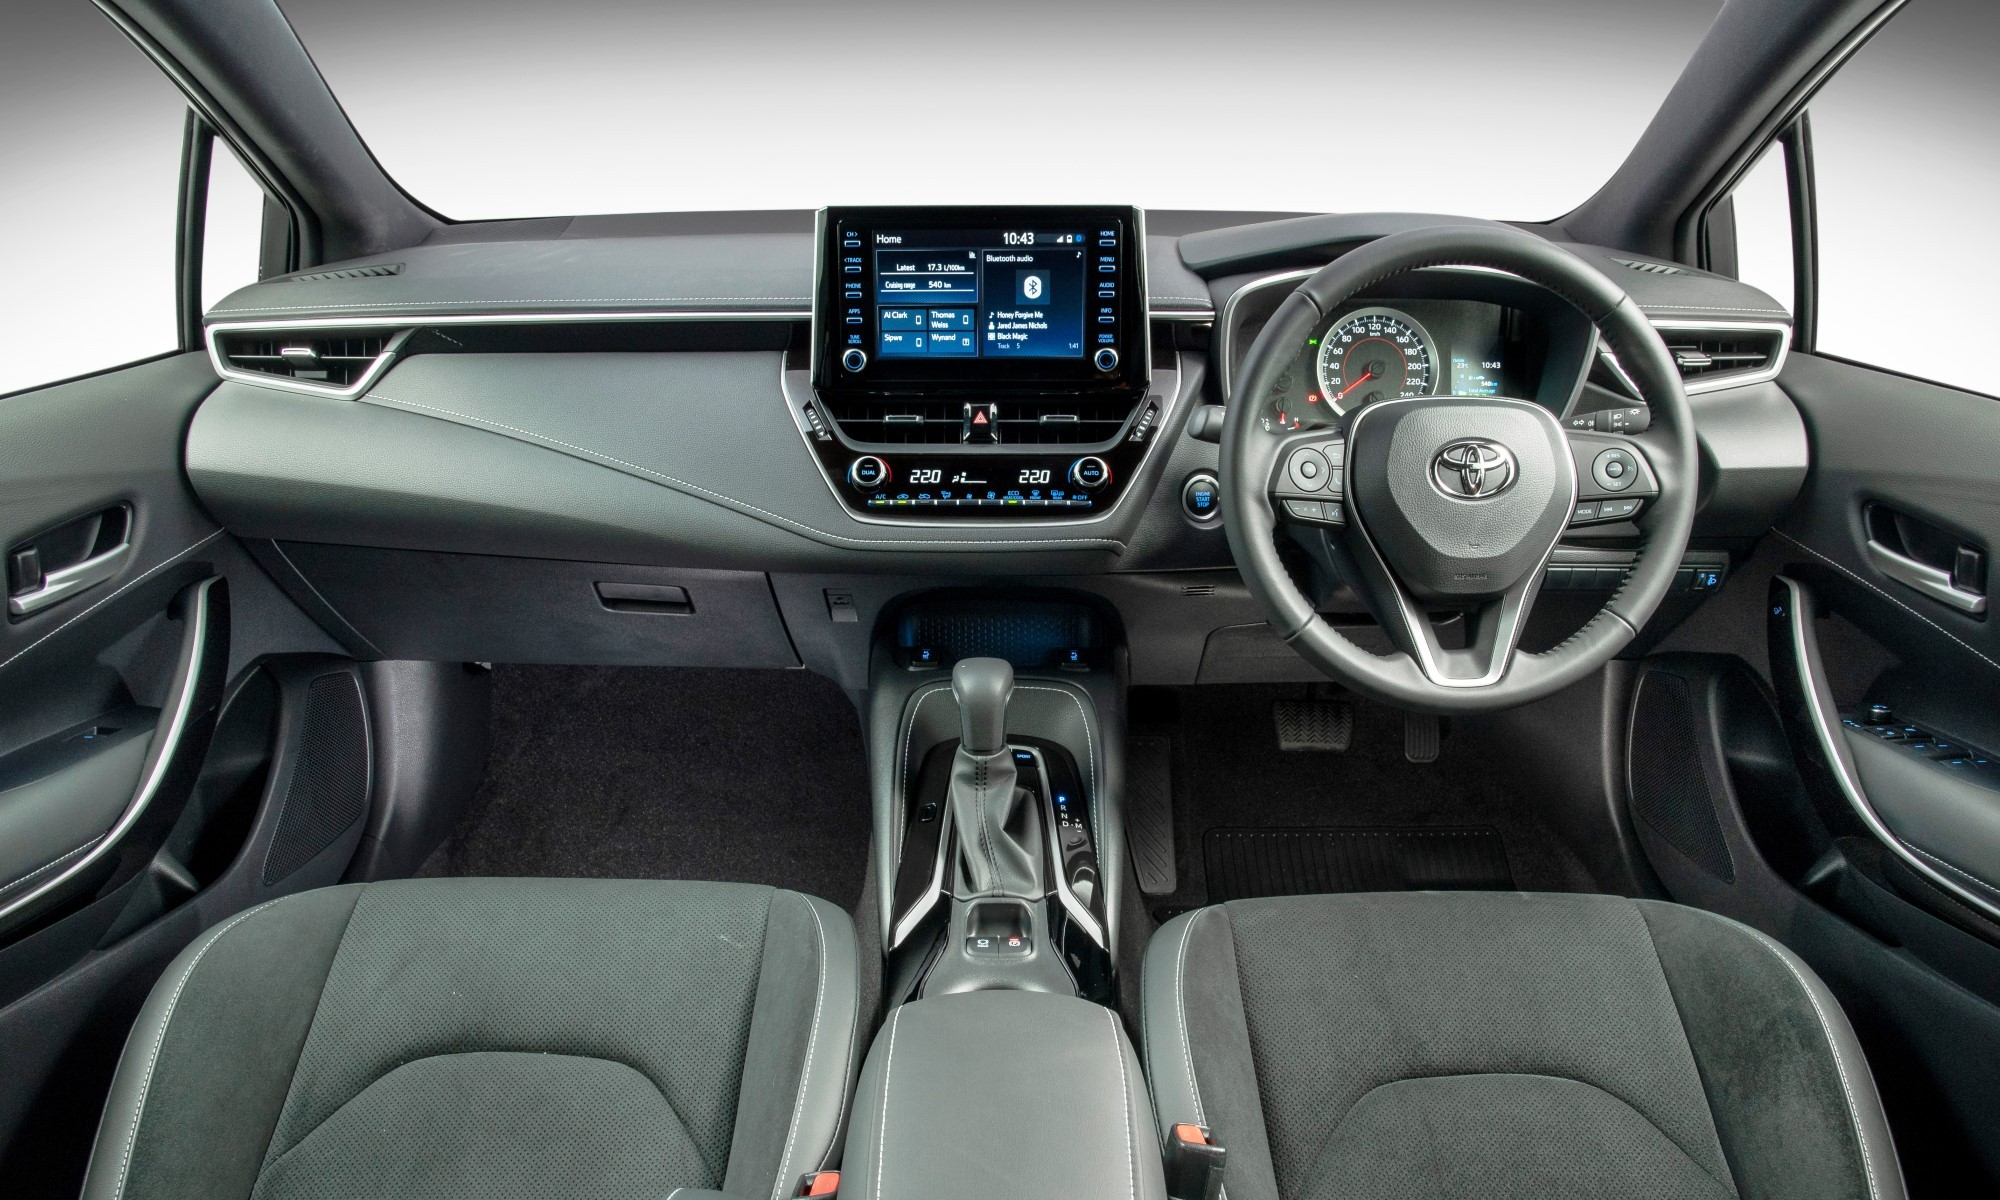 Toyota Corolla Hatch interior